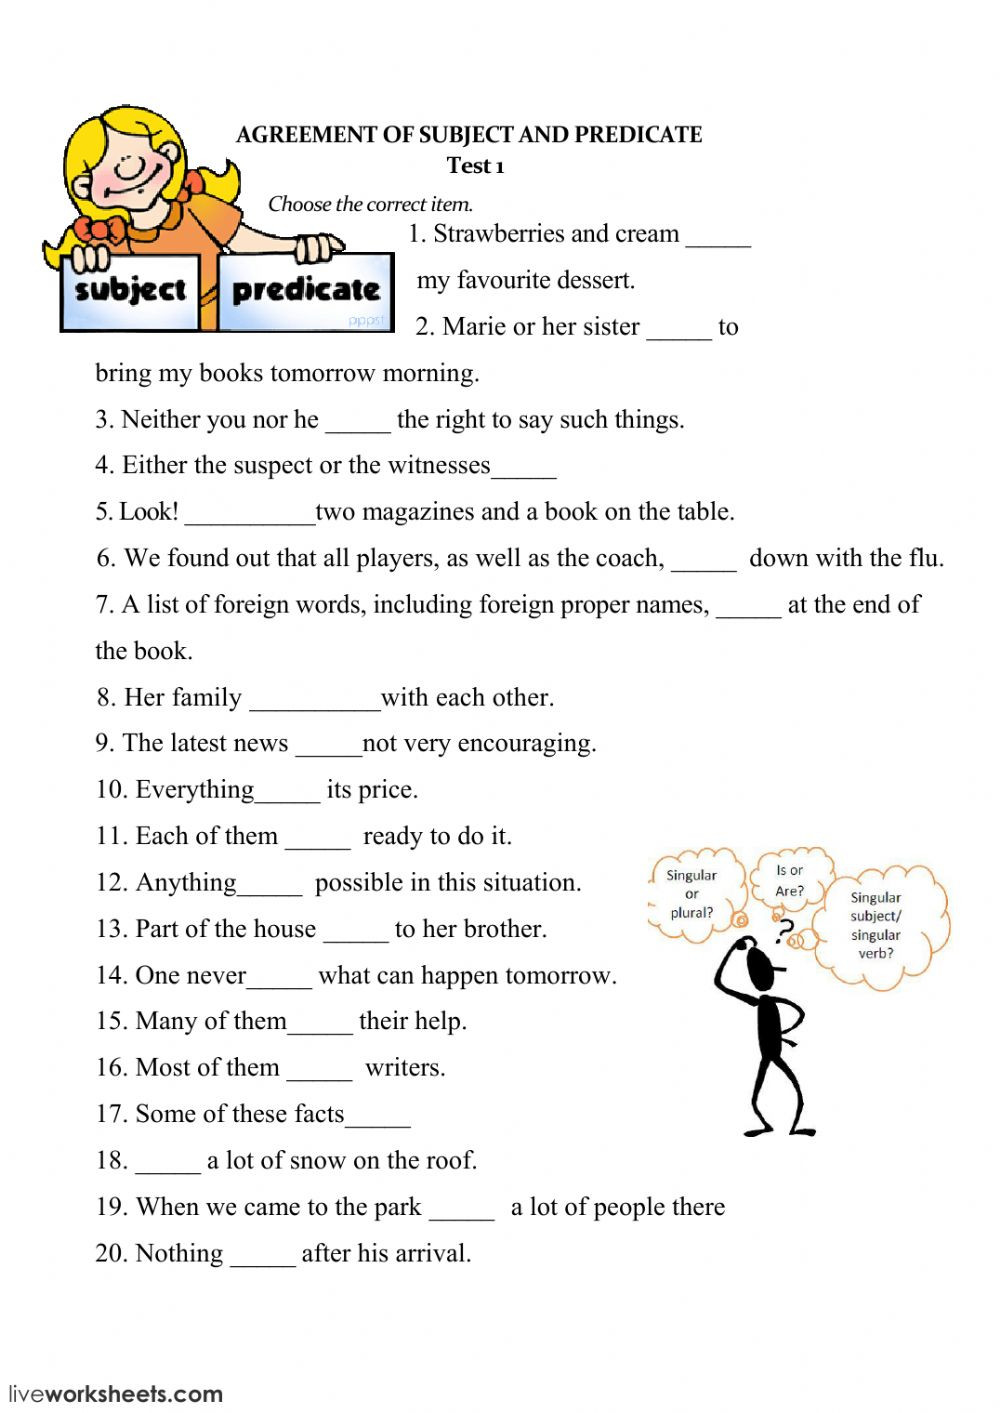 Verbs Worksheets for Middle School Math 6 solar Energy Worksheets Middle School Subject Verb